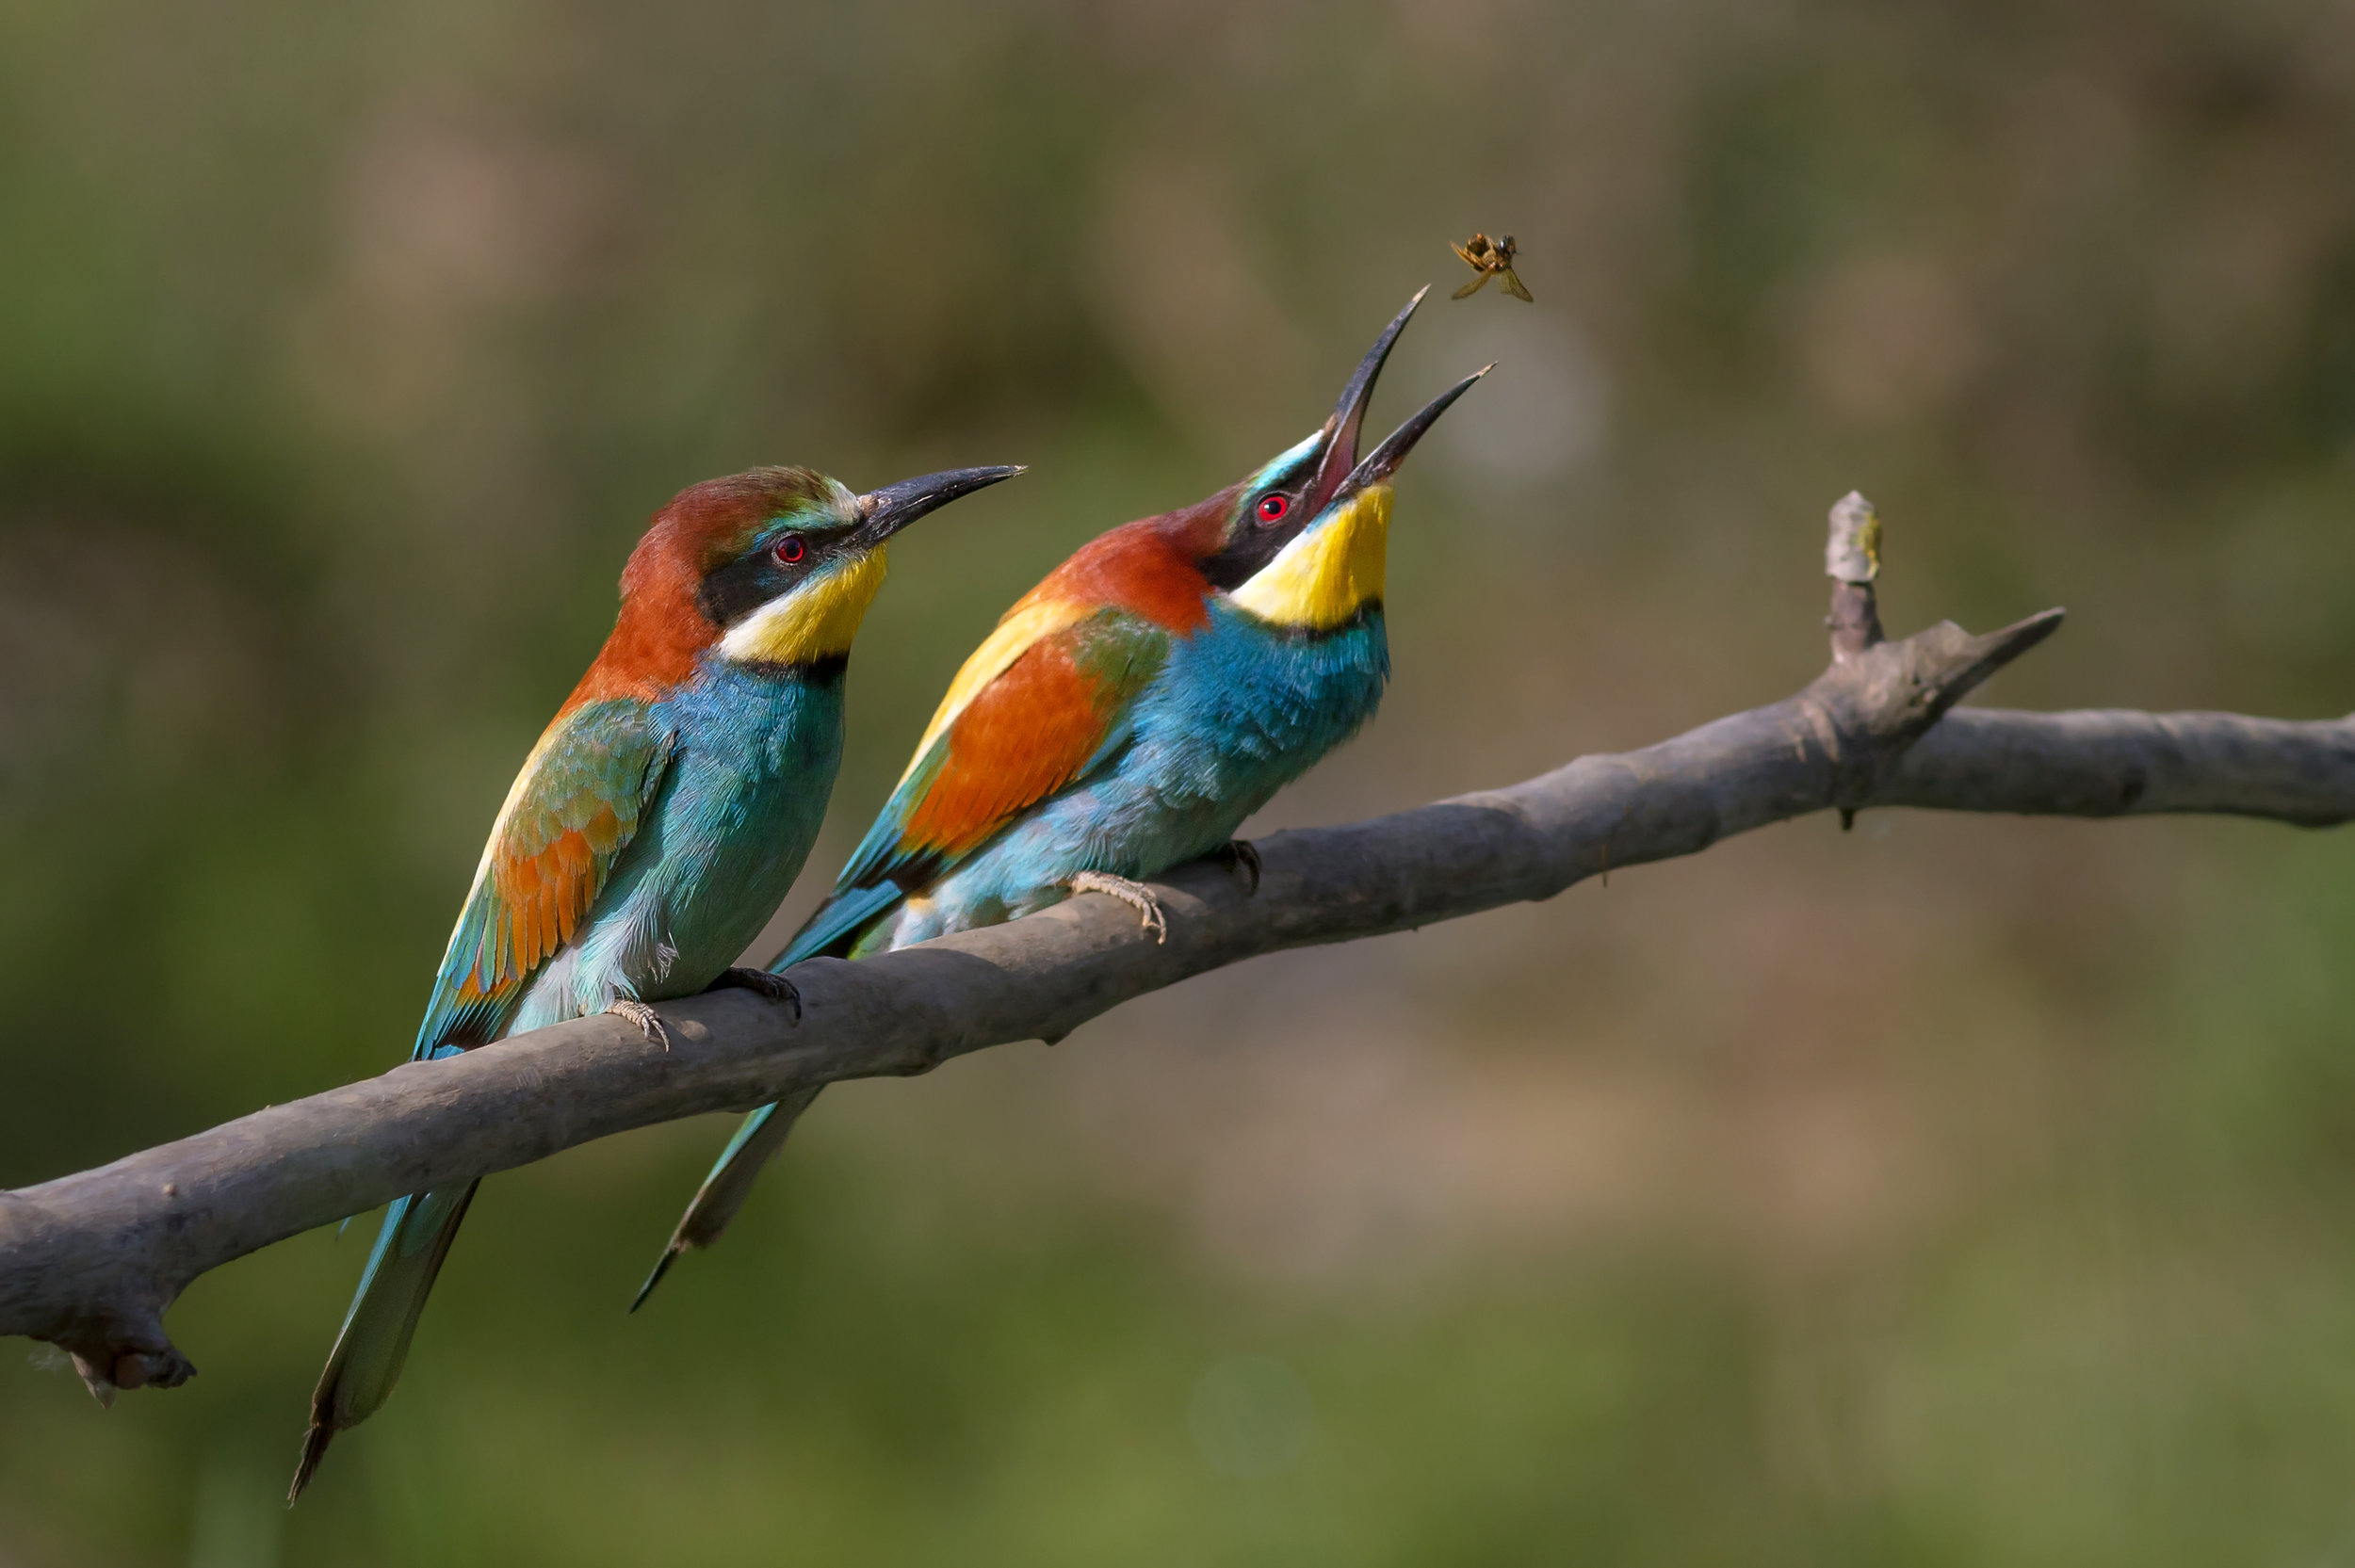 Insects Pair_of_Merops_apiaster_feeding.jpg